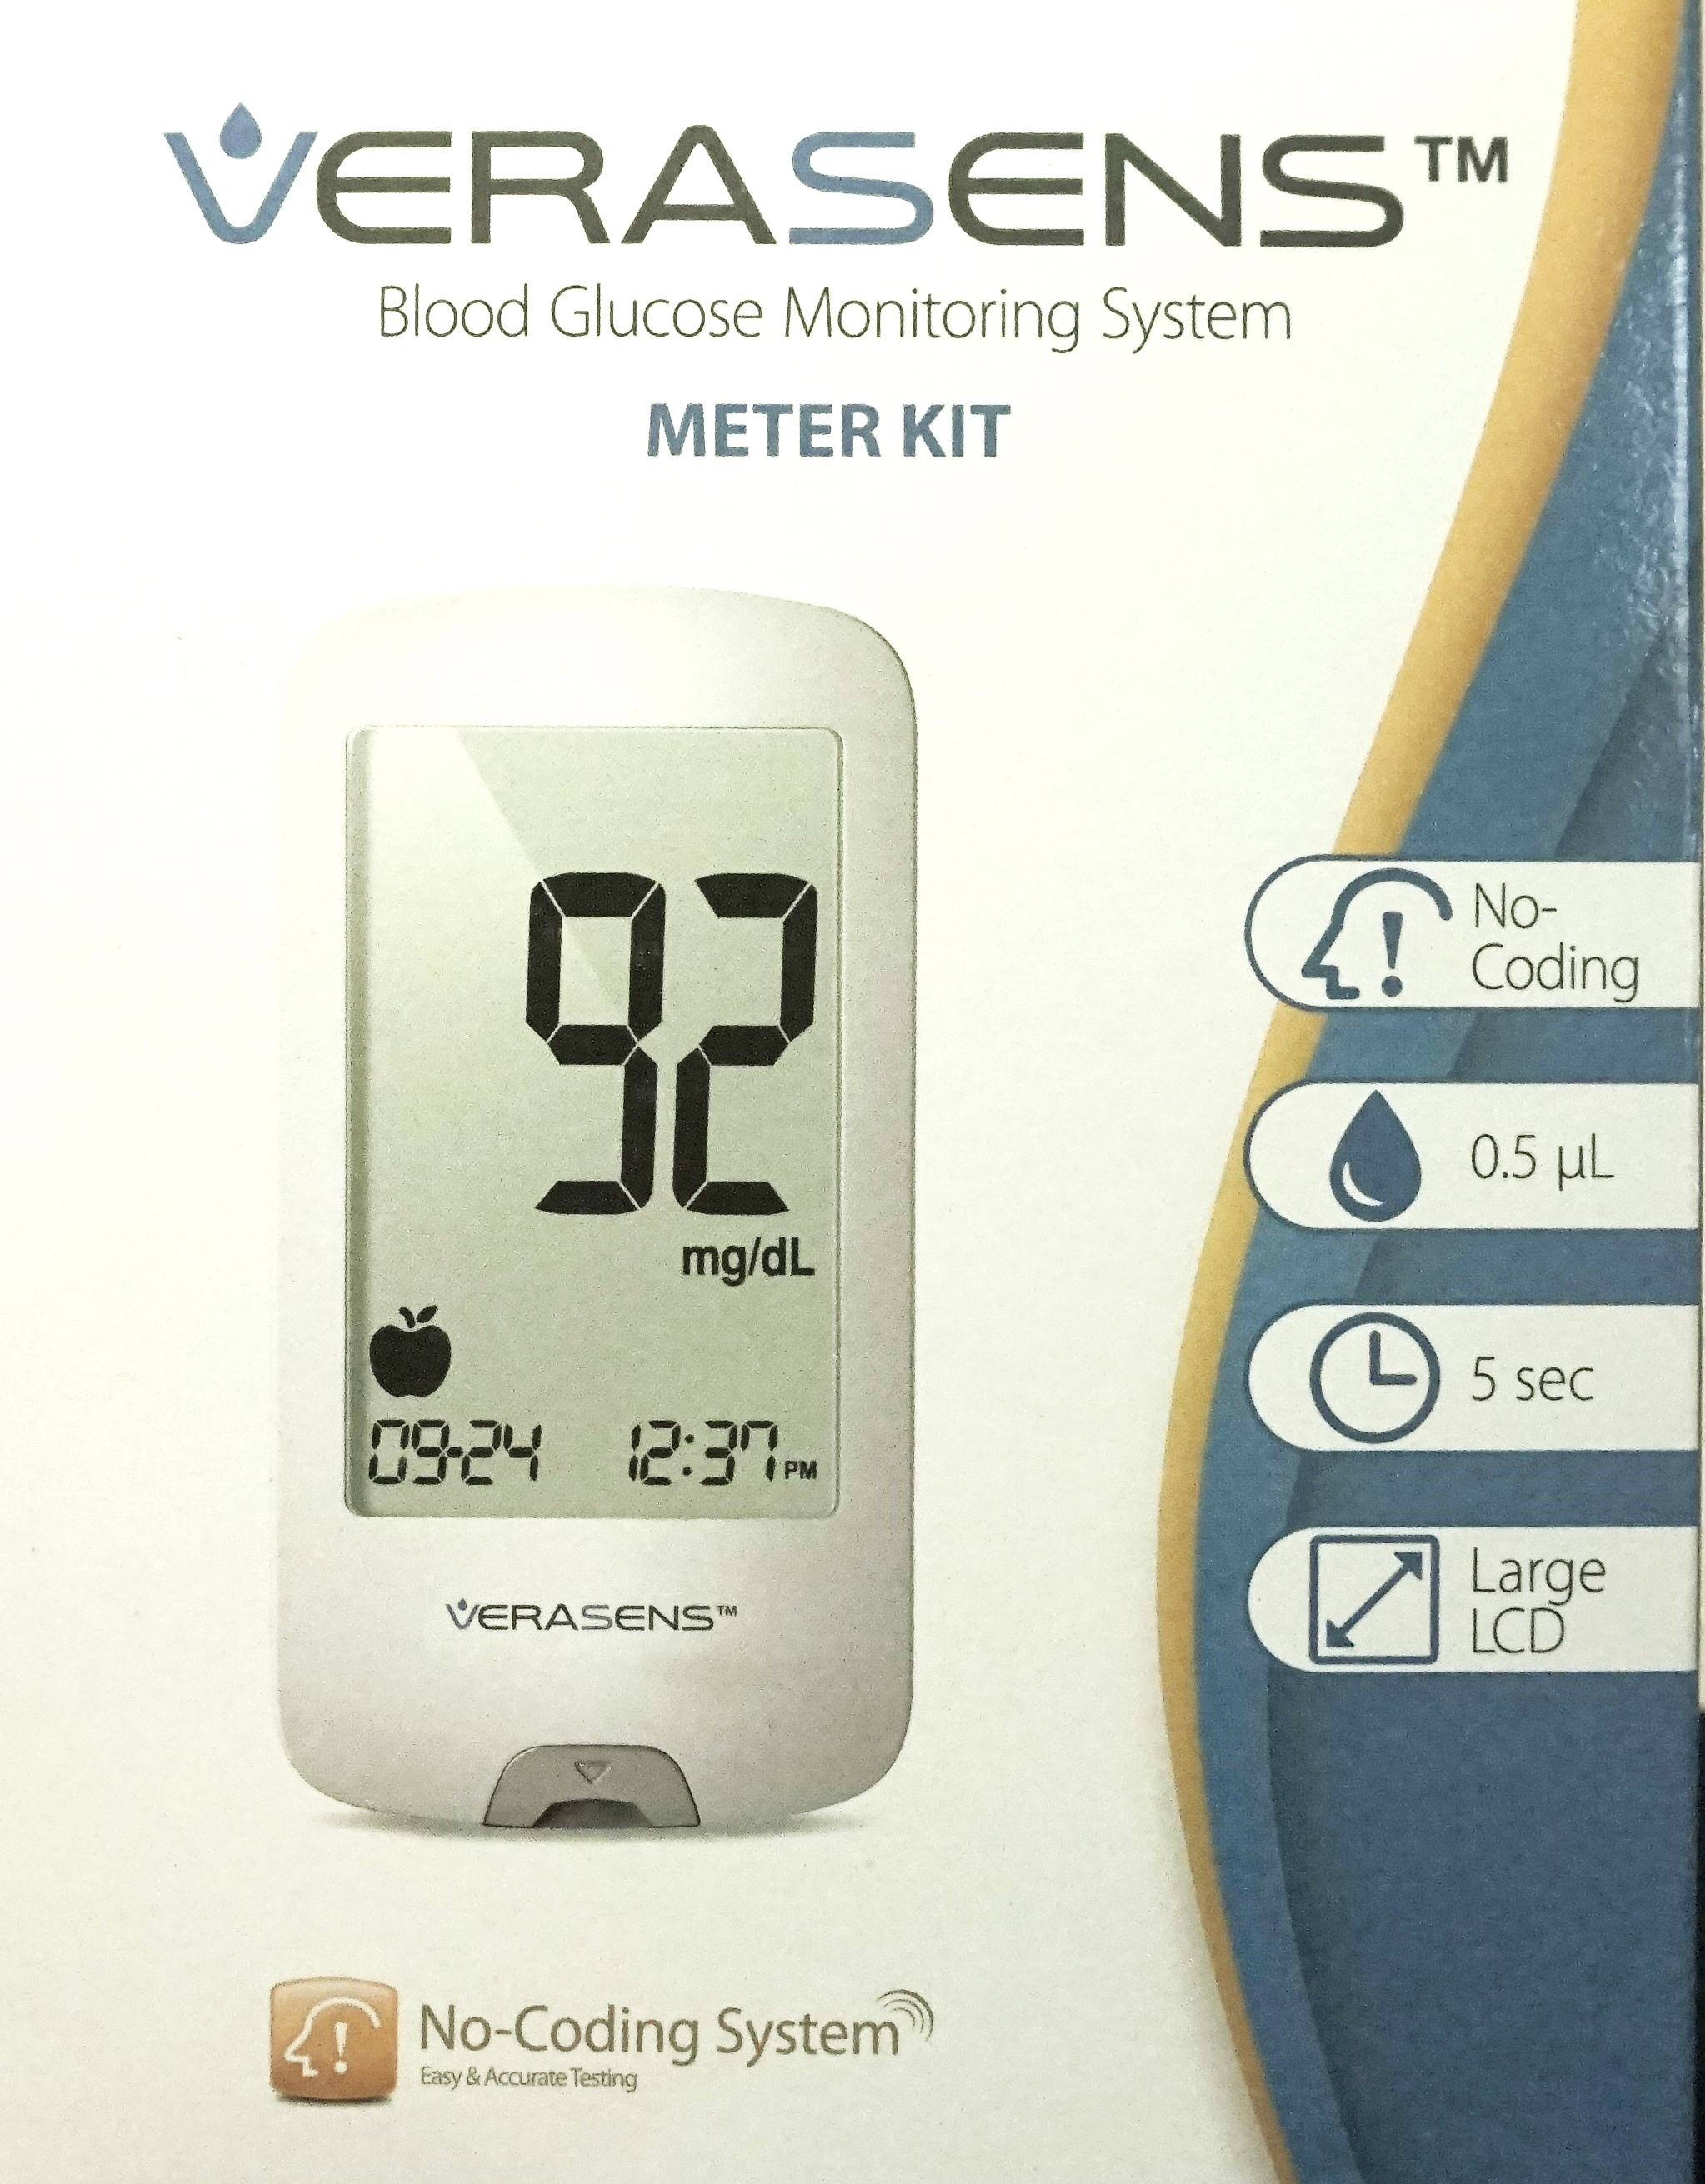 Verasens Blood Glucose Meter Kit